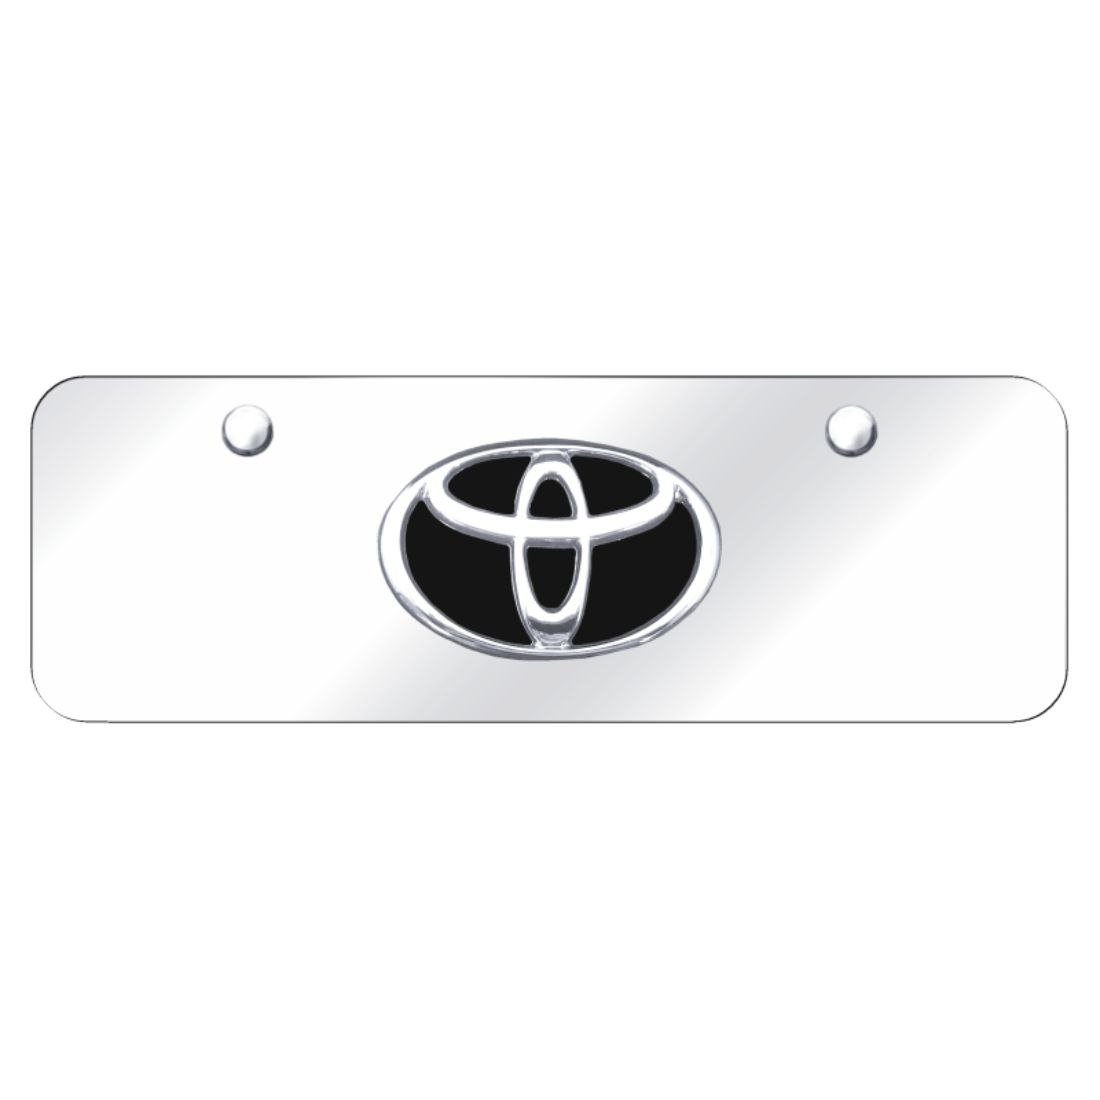 Toyota Tacoma Logo License Plate Standard Frame Black Powder Stainless Steel